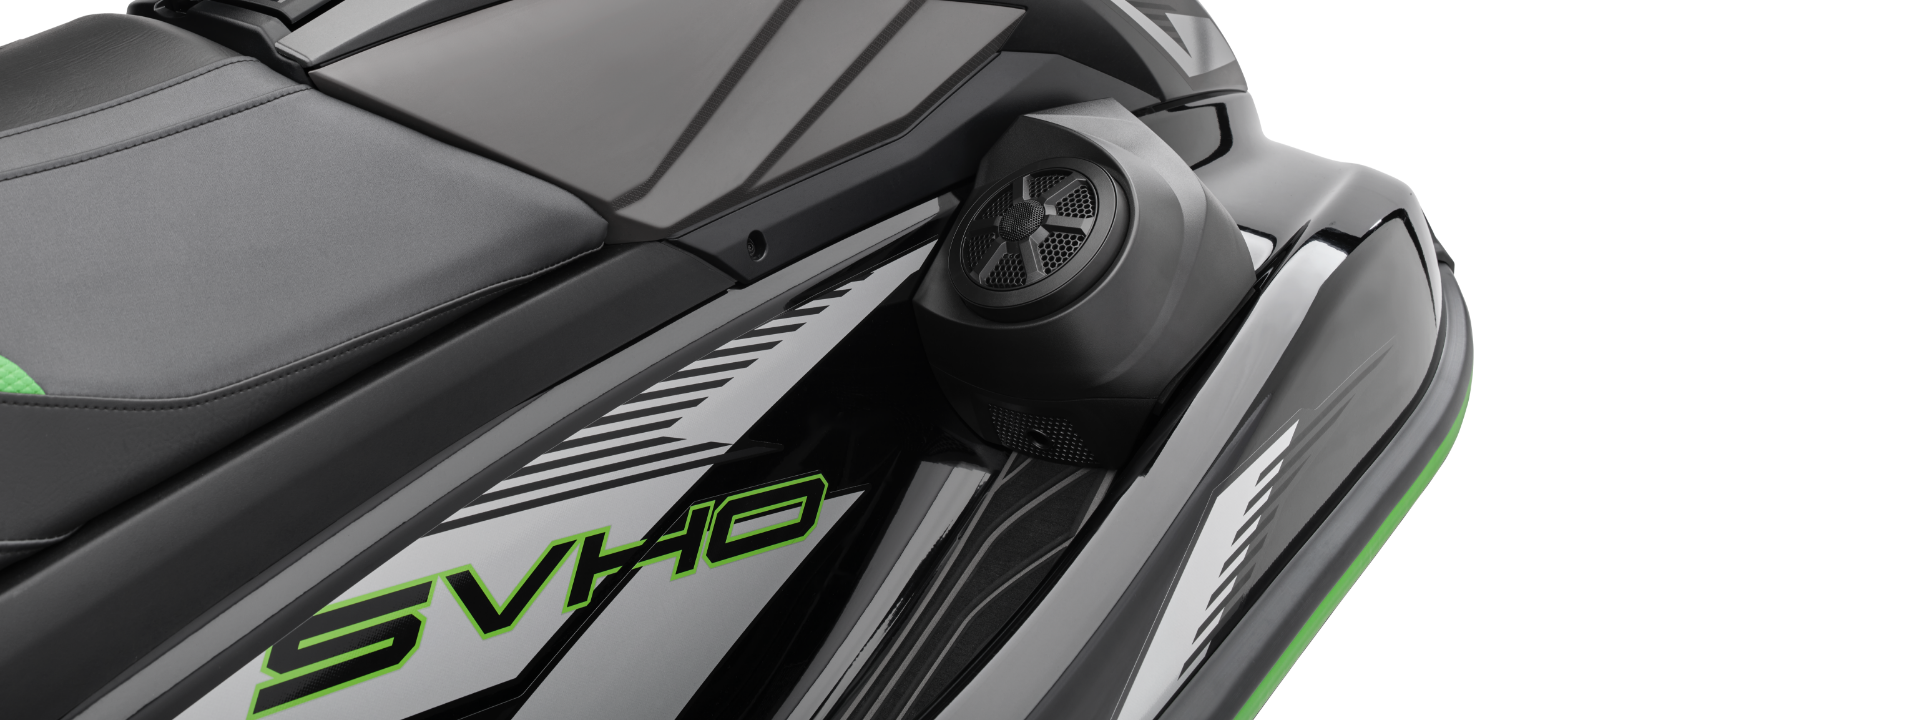 yamaha-waverunners-2021-gp1800r-feature-integrated-speakers.png